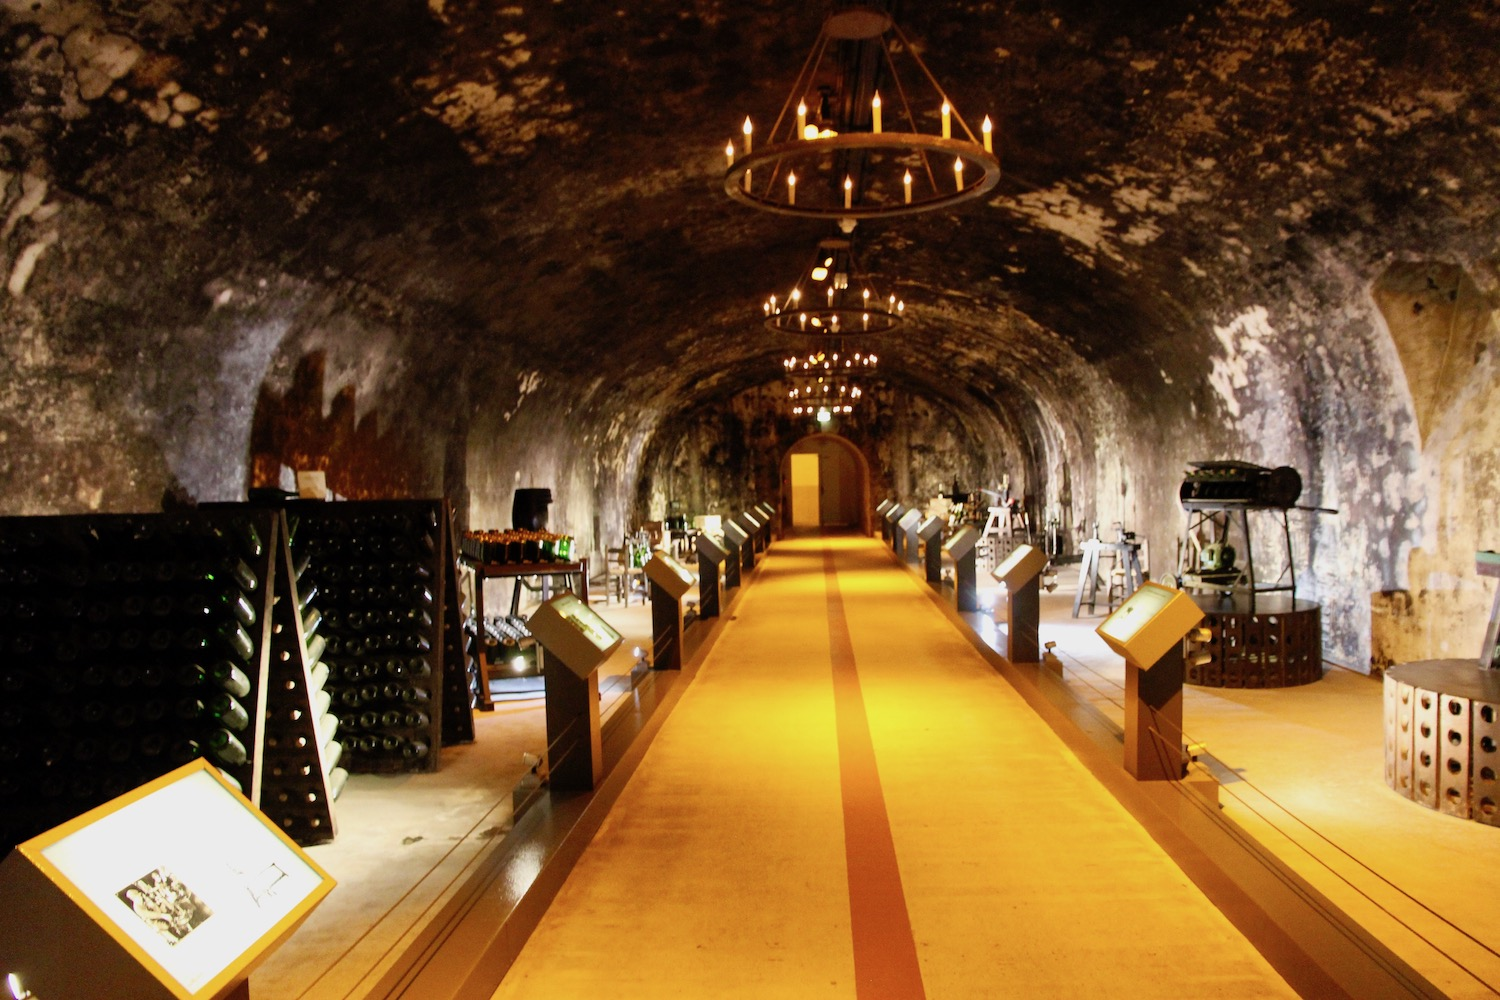 Museum deep in the caves of Remis